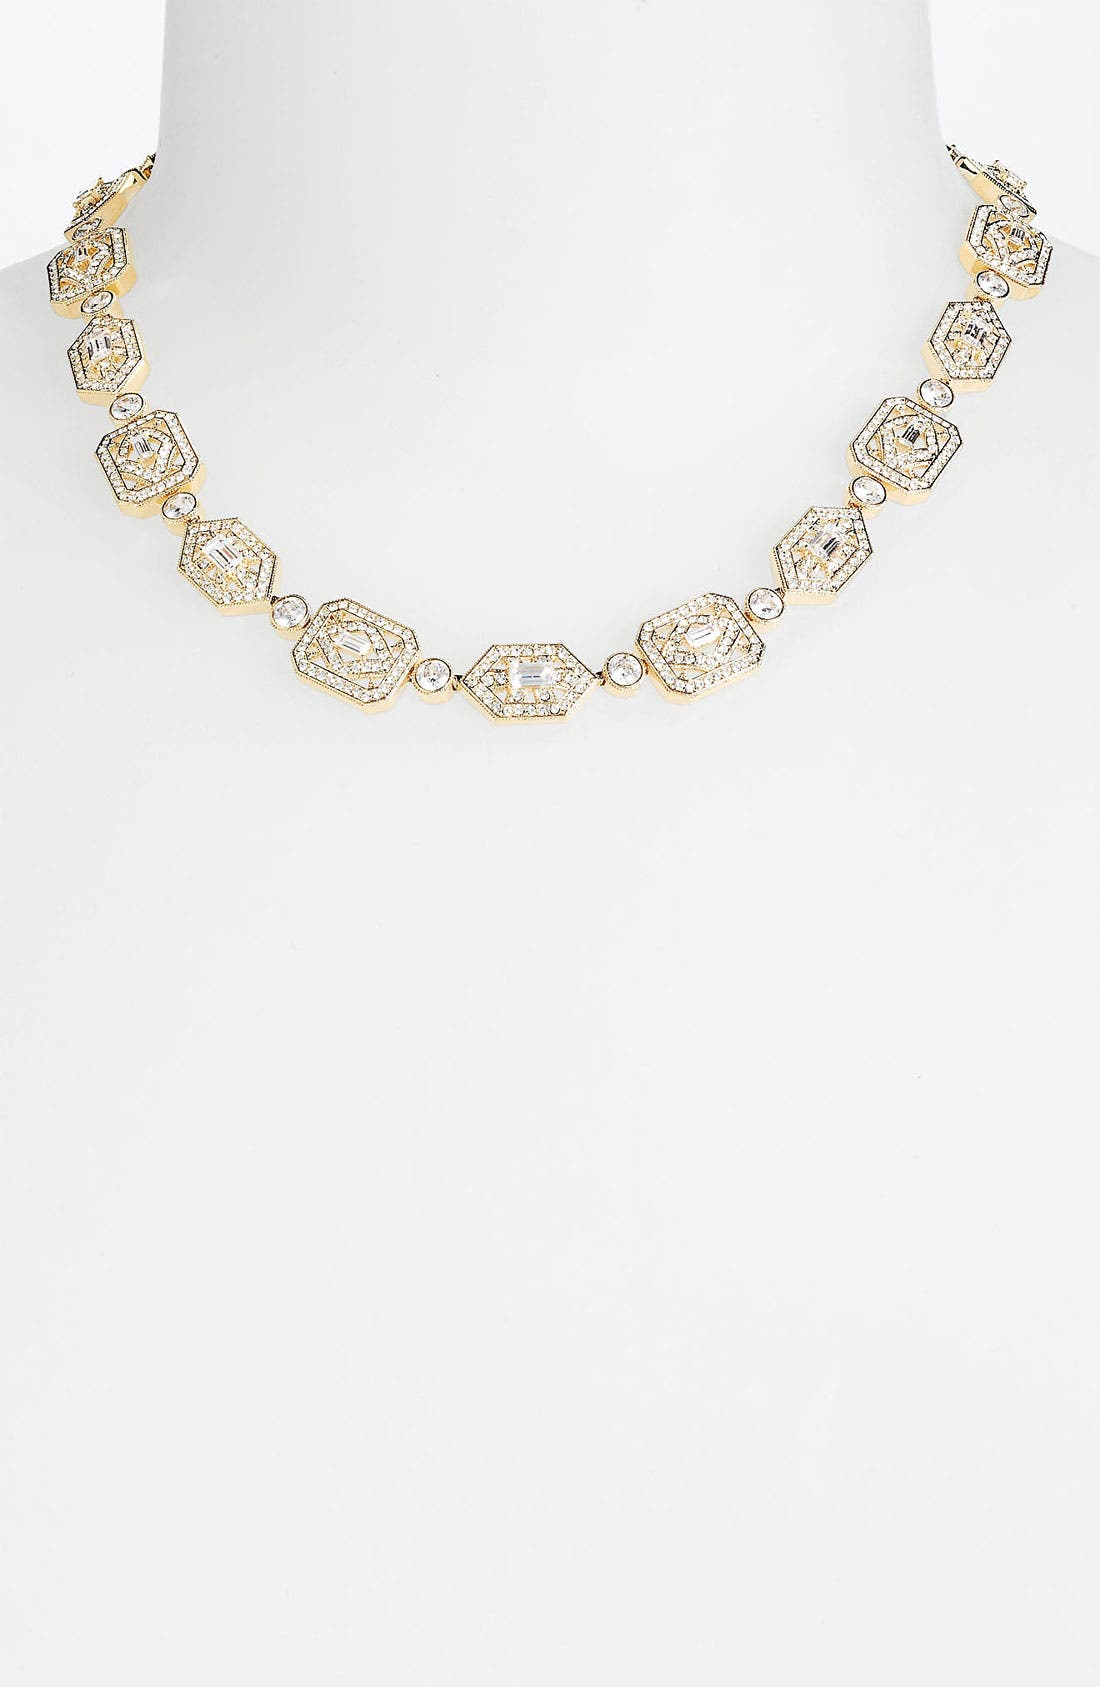 Alternate Image 1 Selected - Nadri 'Art Deco' Collar Necklace (Nordstrom Exclusive)